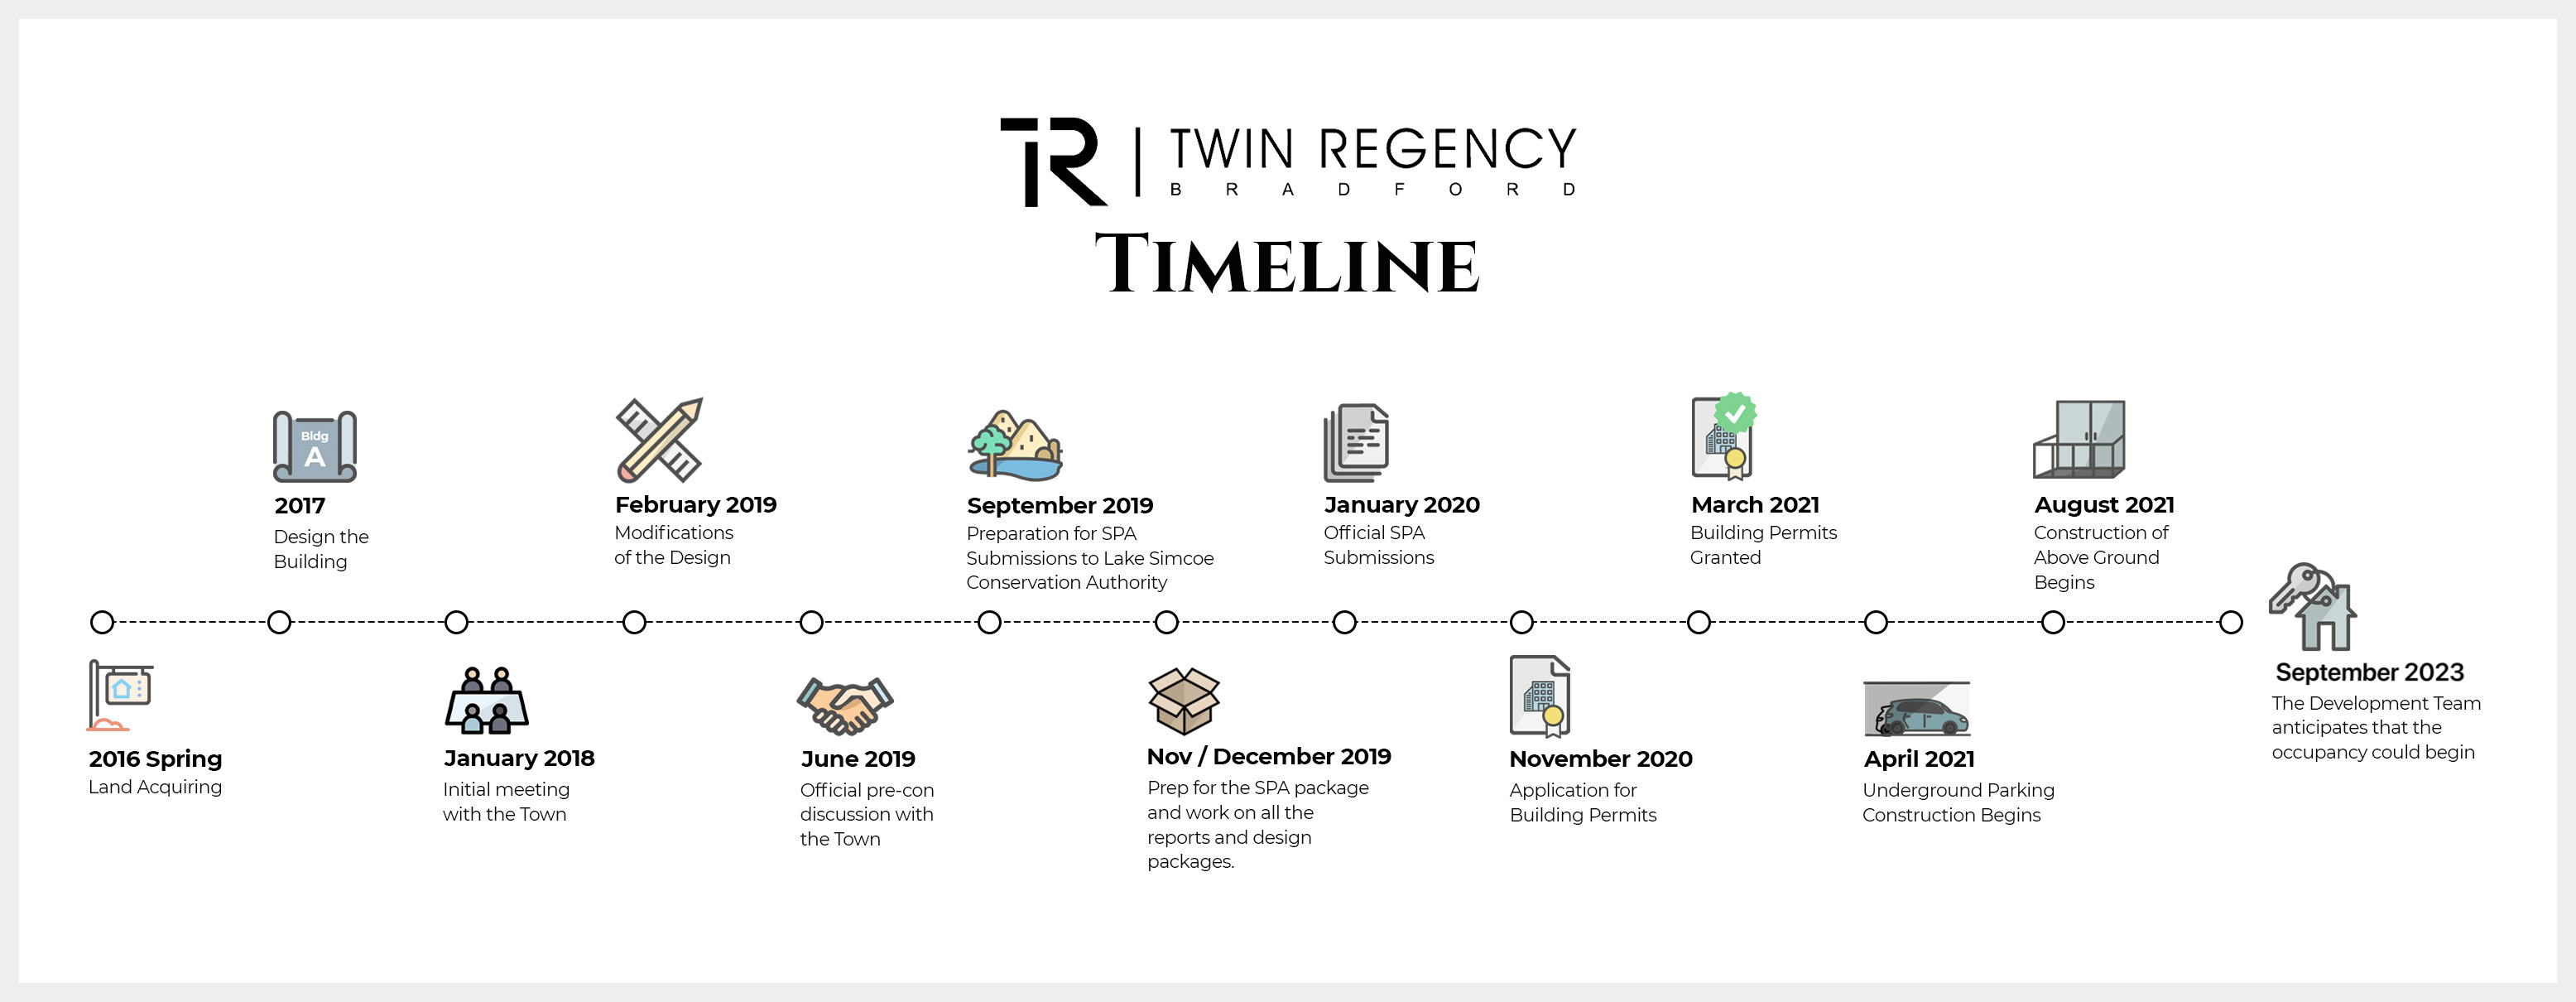 <br /> <b>Warning</b>:  Illegal string offset 'alt' in <b>/srv/users/twinregency/apps/twinregency/public/wp-content/themes/twin-regency/page-templates/home.php</b> on line <b>288</b><br /> h